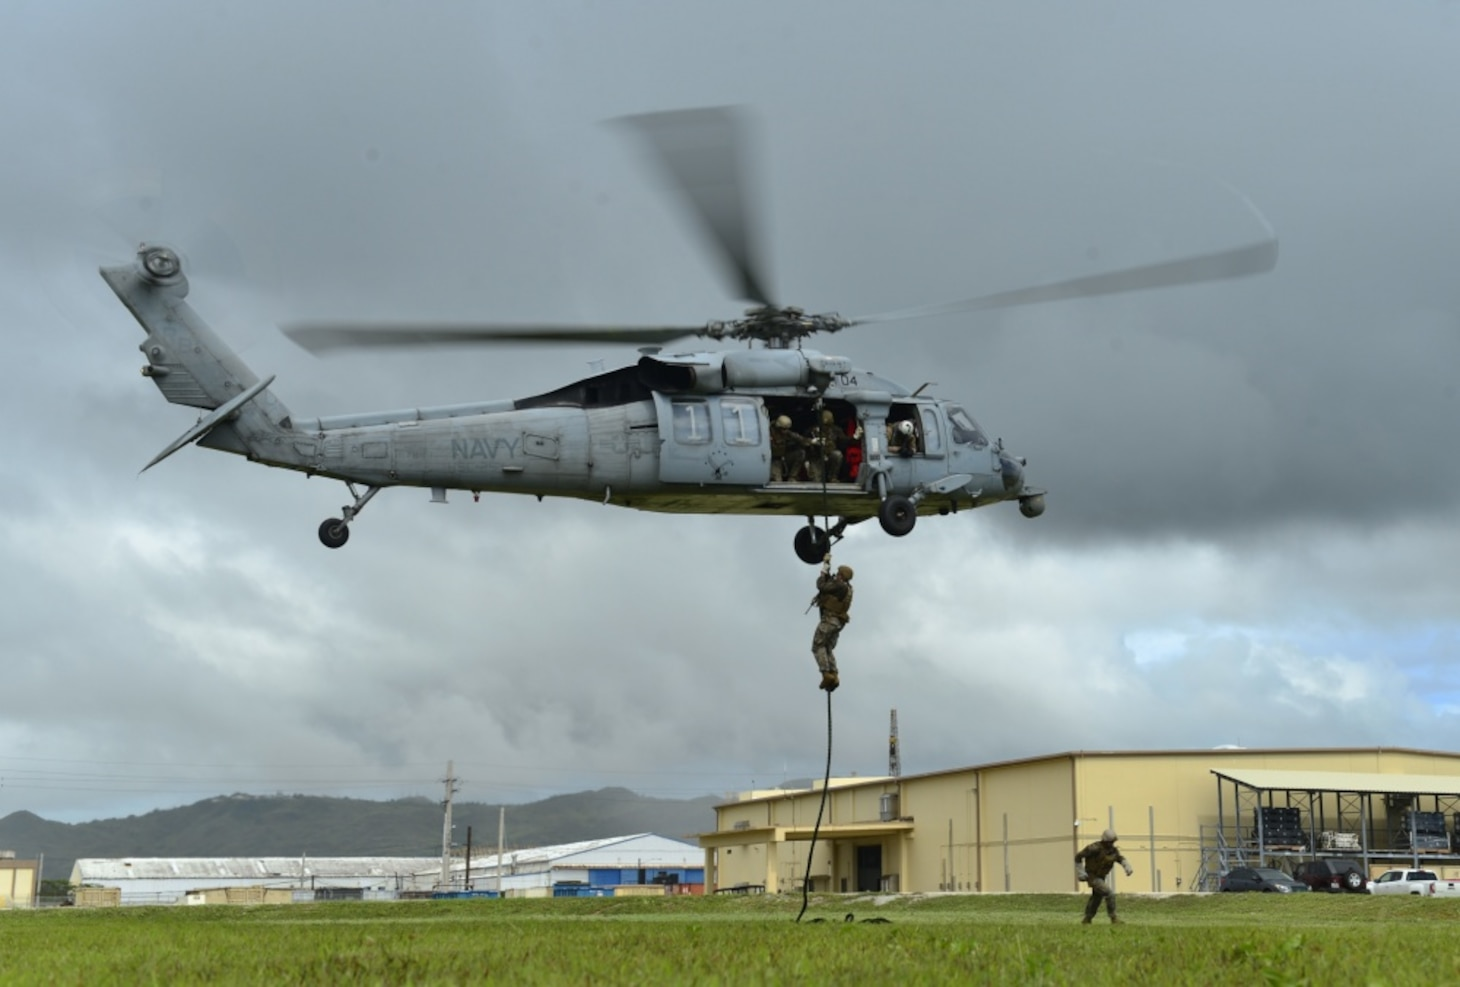 A U.S. Navy Sailor assigned to Explosive Ordnance Disposal Mobile Unit 5 (EODMU 5) fast-ropes from an MH-60S Seahawk helicopter during HYDROCRAB at Santa Rita, Guam, August 19, 2019. HYDRACRAB is quadrilateral exercise conducted by forces from Australia, Canada, New Zealand, and U.S. Naval forces. The purpose of this exercise is to prepare the participating Explosive Ordnance Disposal (EOD) forces to operate as an integrated, capable, and potent allied force ready to respond to a changing and complex maritime environment in the Indo-Pacific region.